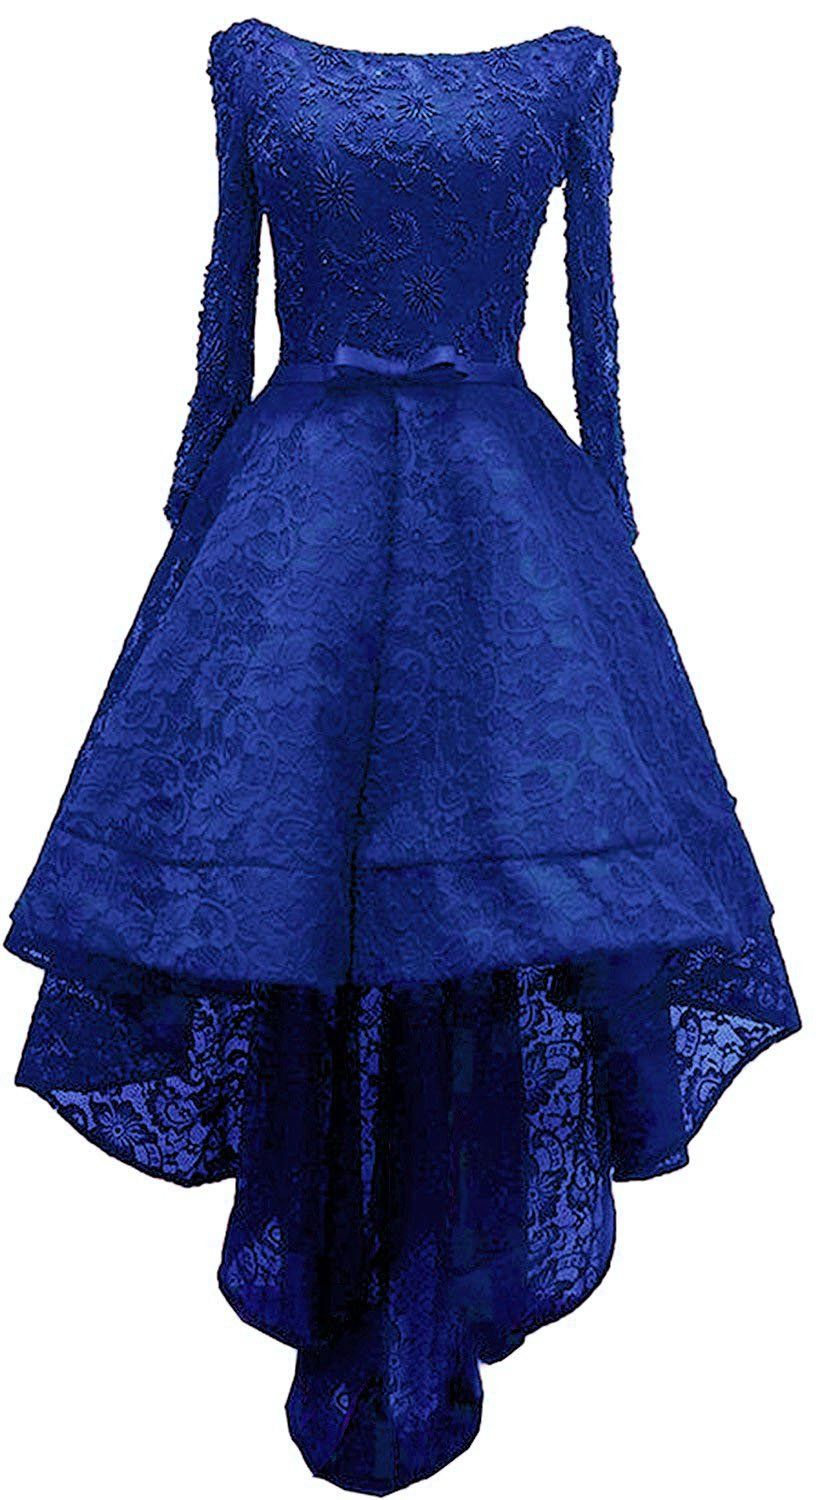 Onlylover womenus high low appliques evening gown long sleeve lace